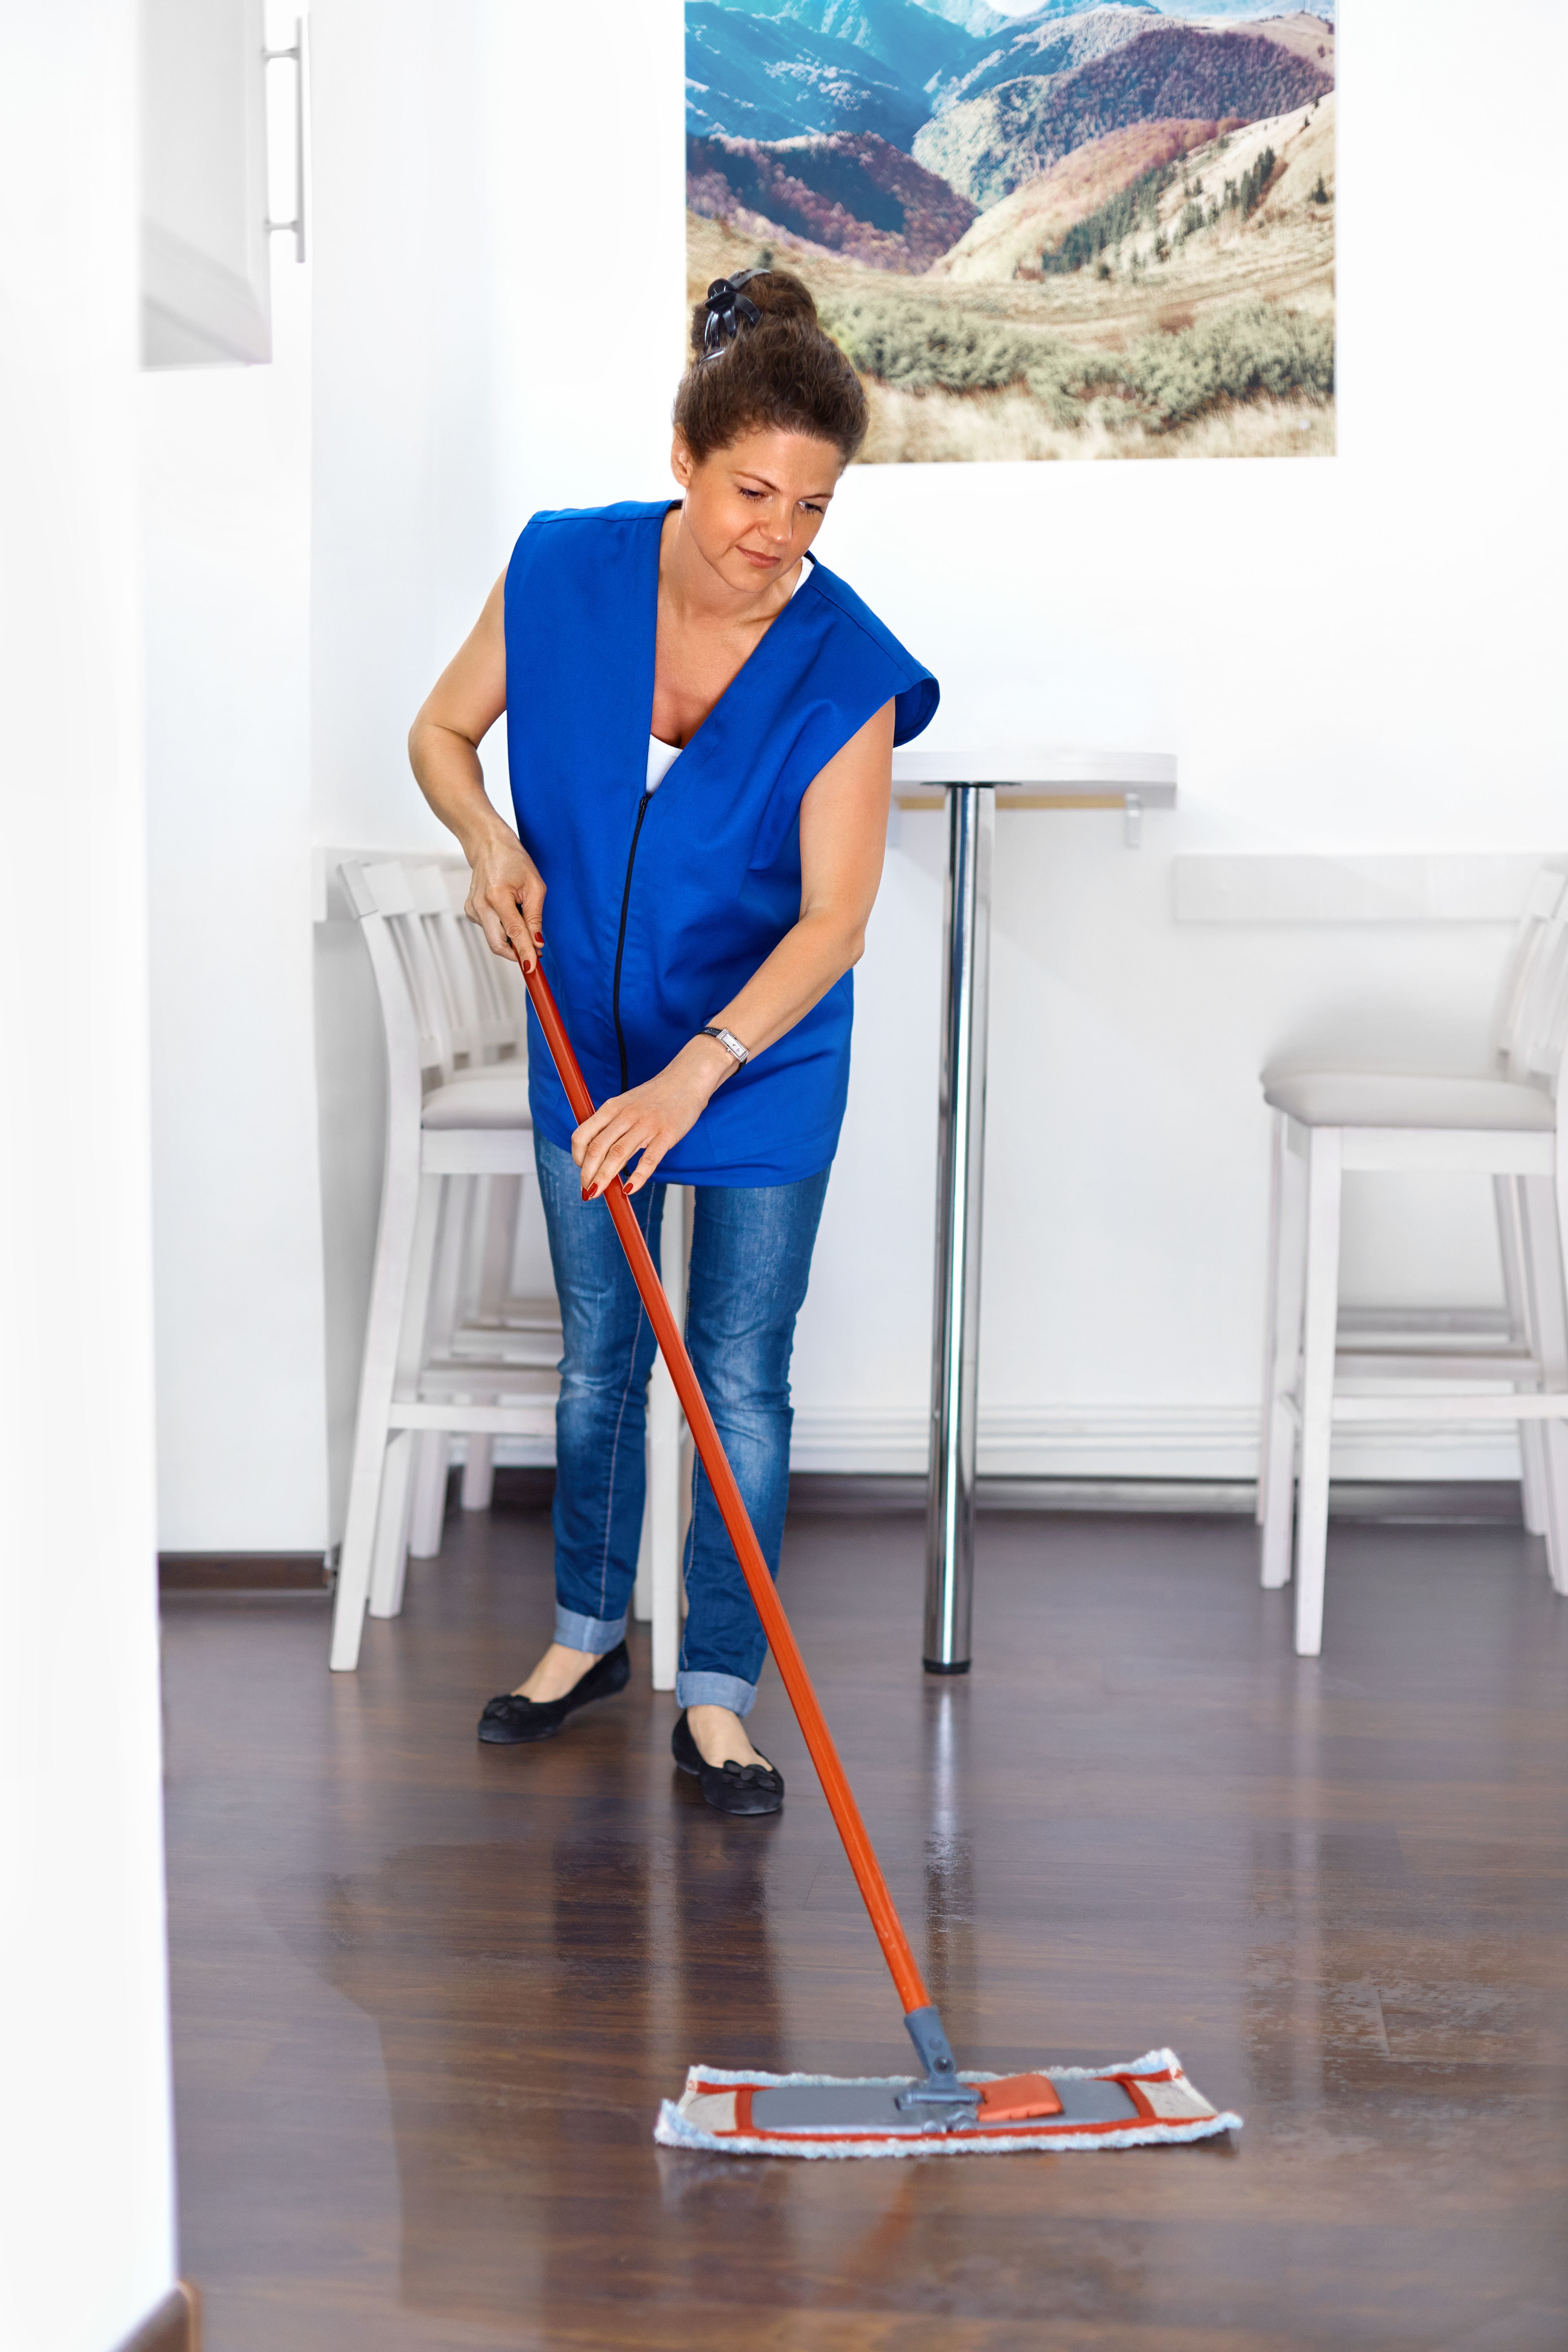 Cleanzen Cleaning Services